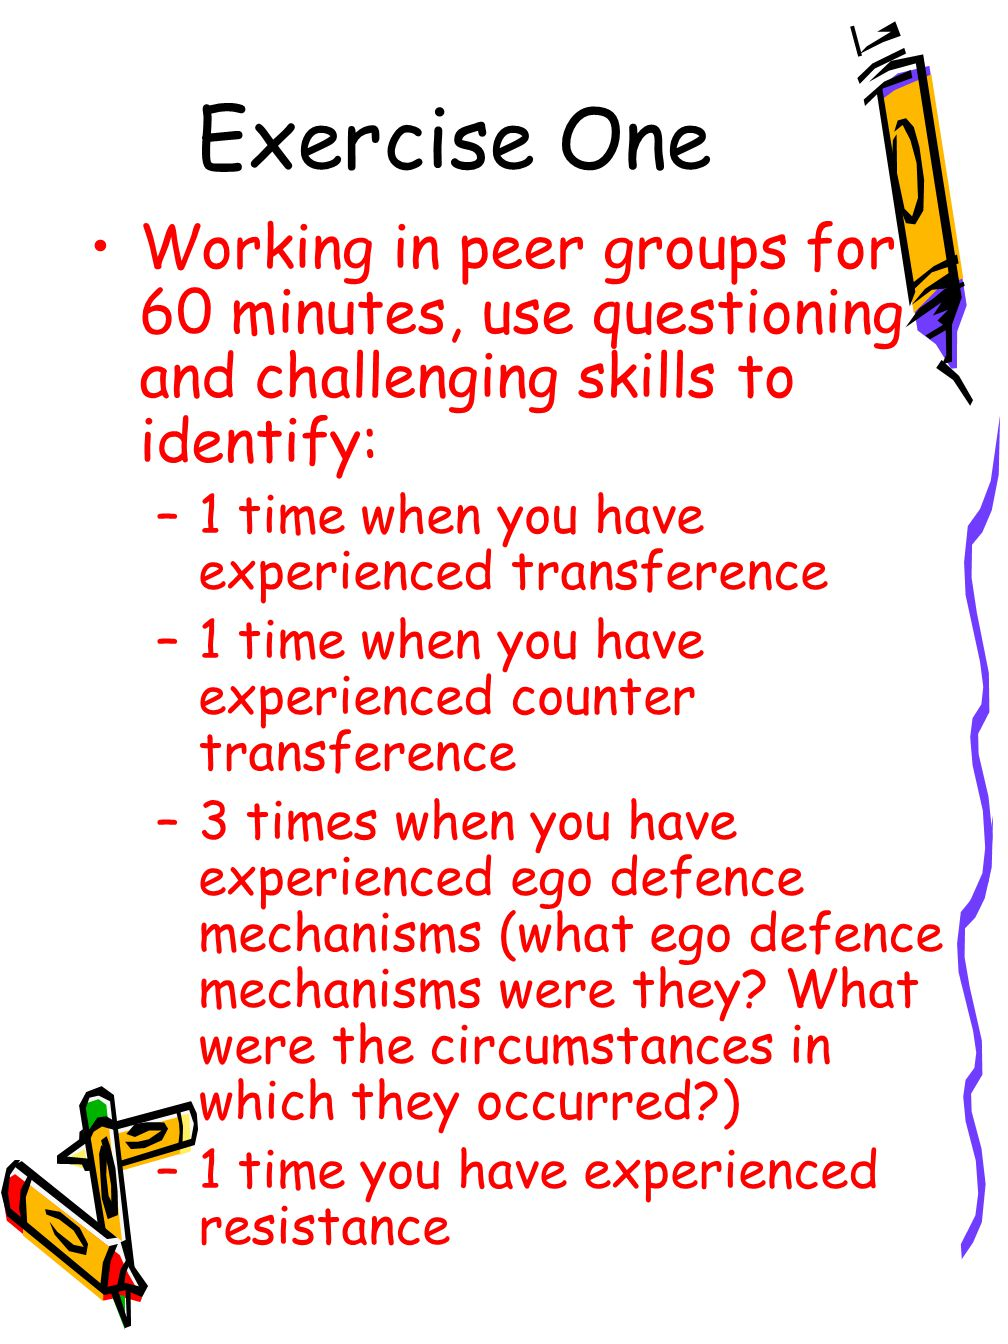 Exercise One Working in peer groups for 60 minutes, use questioning and challenging skills to identify: